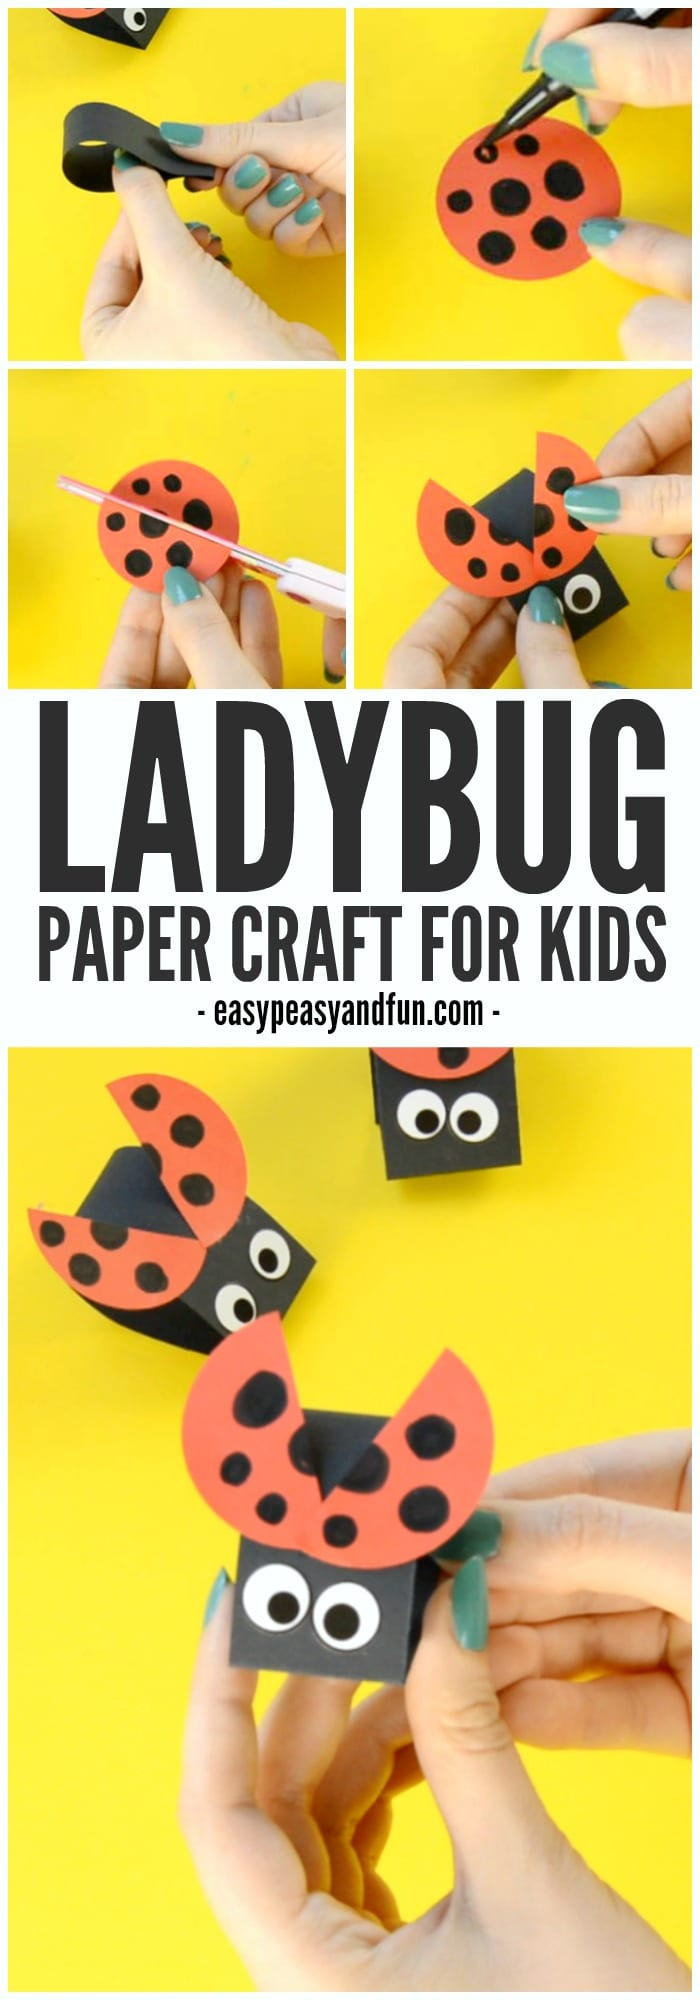 Cute Ladybug Paper Craft for Kids to Make